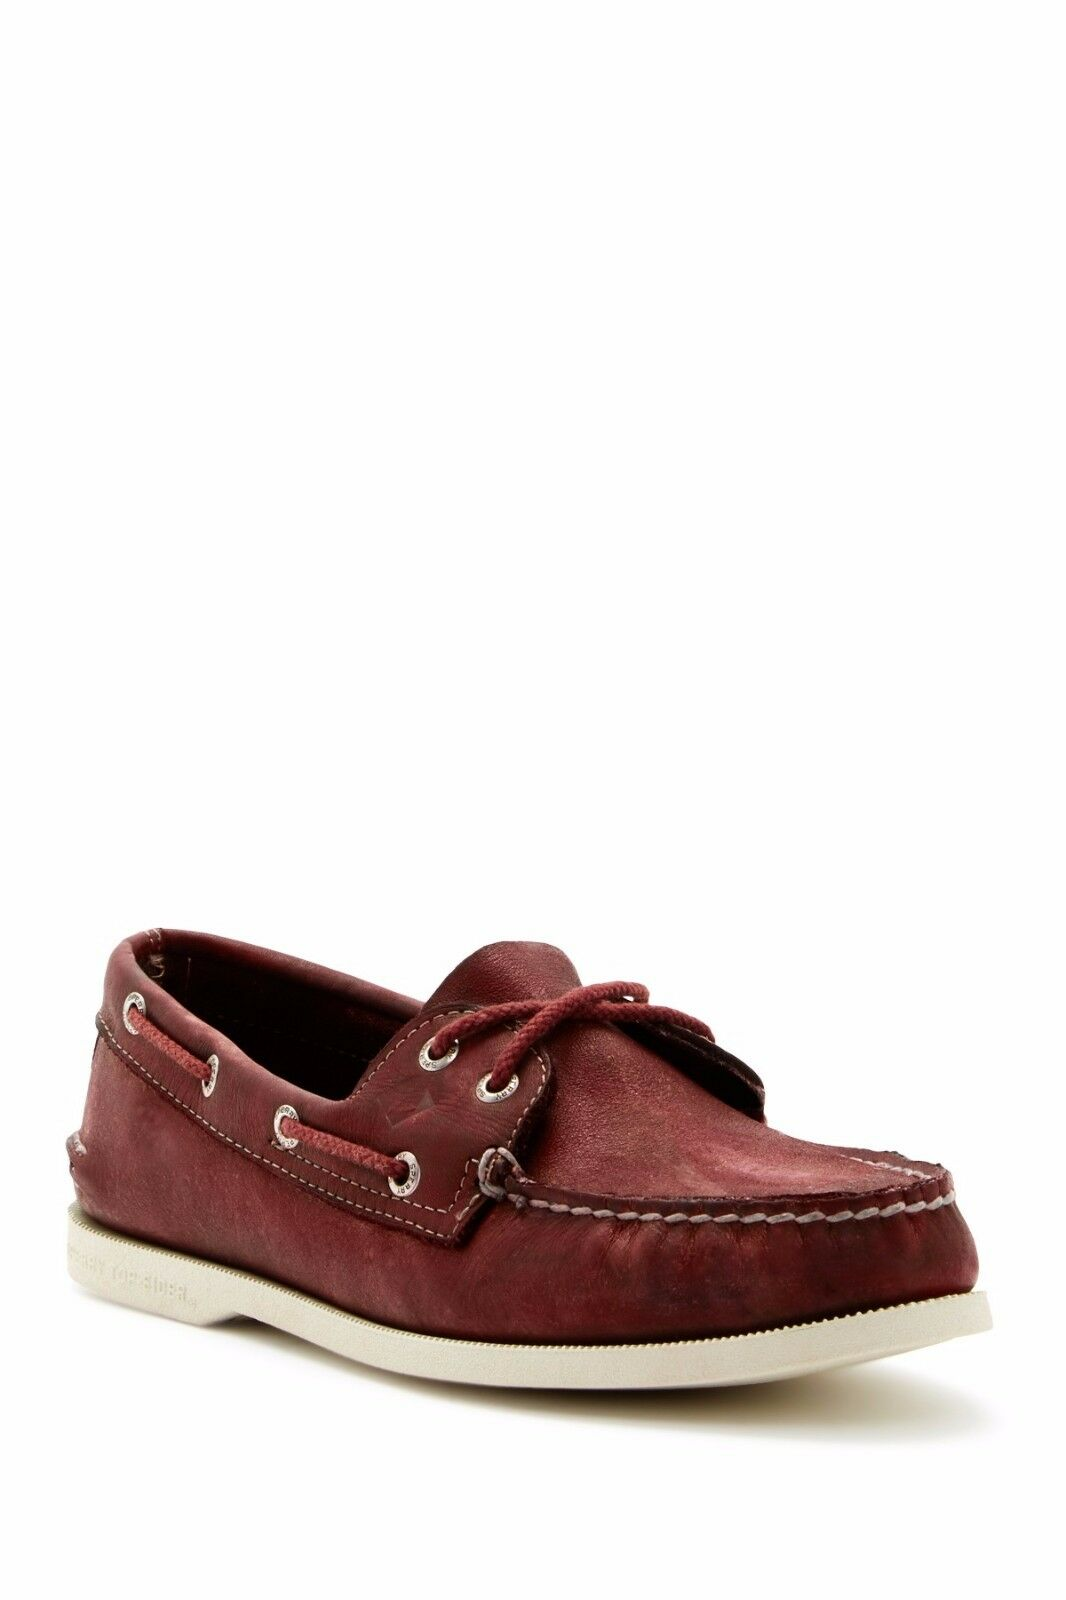 Sperry Authentic Original 2 Eye color Boat shoes 15M